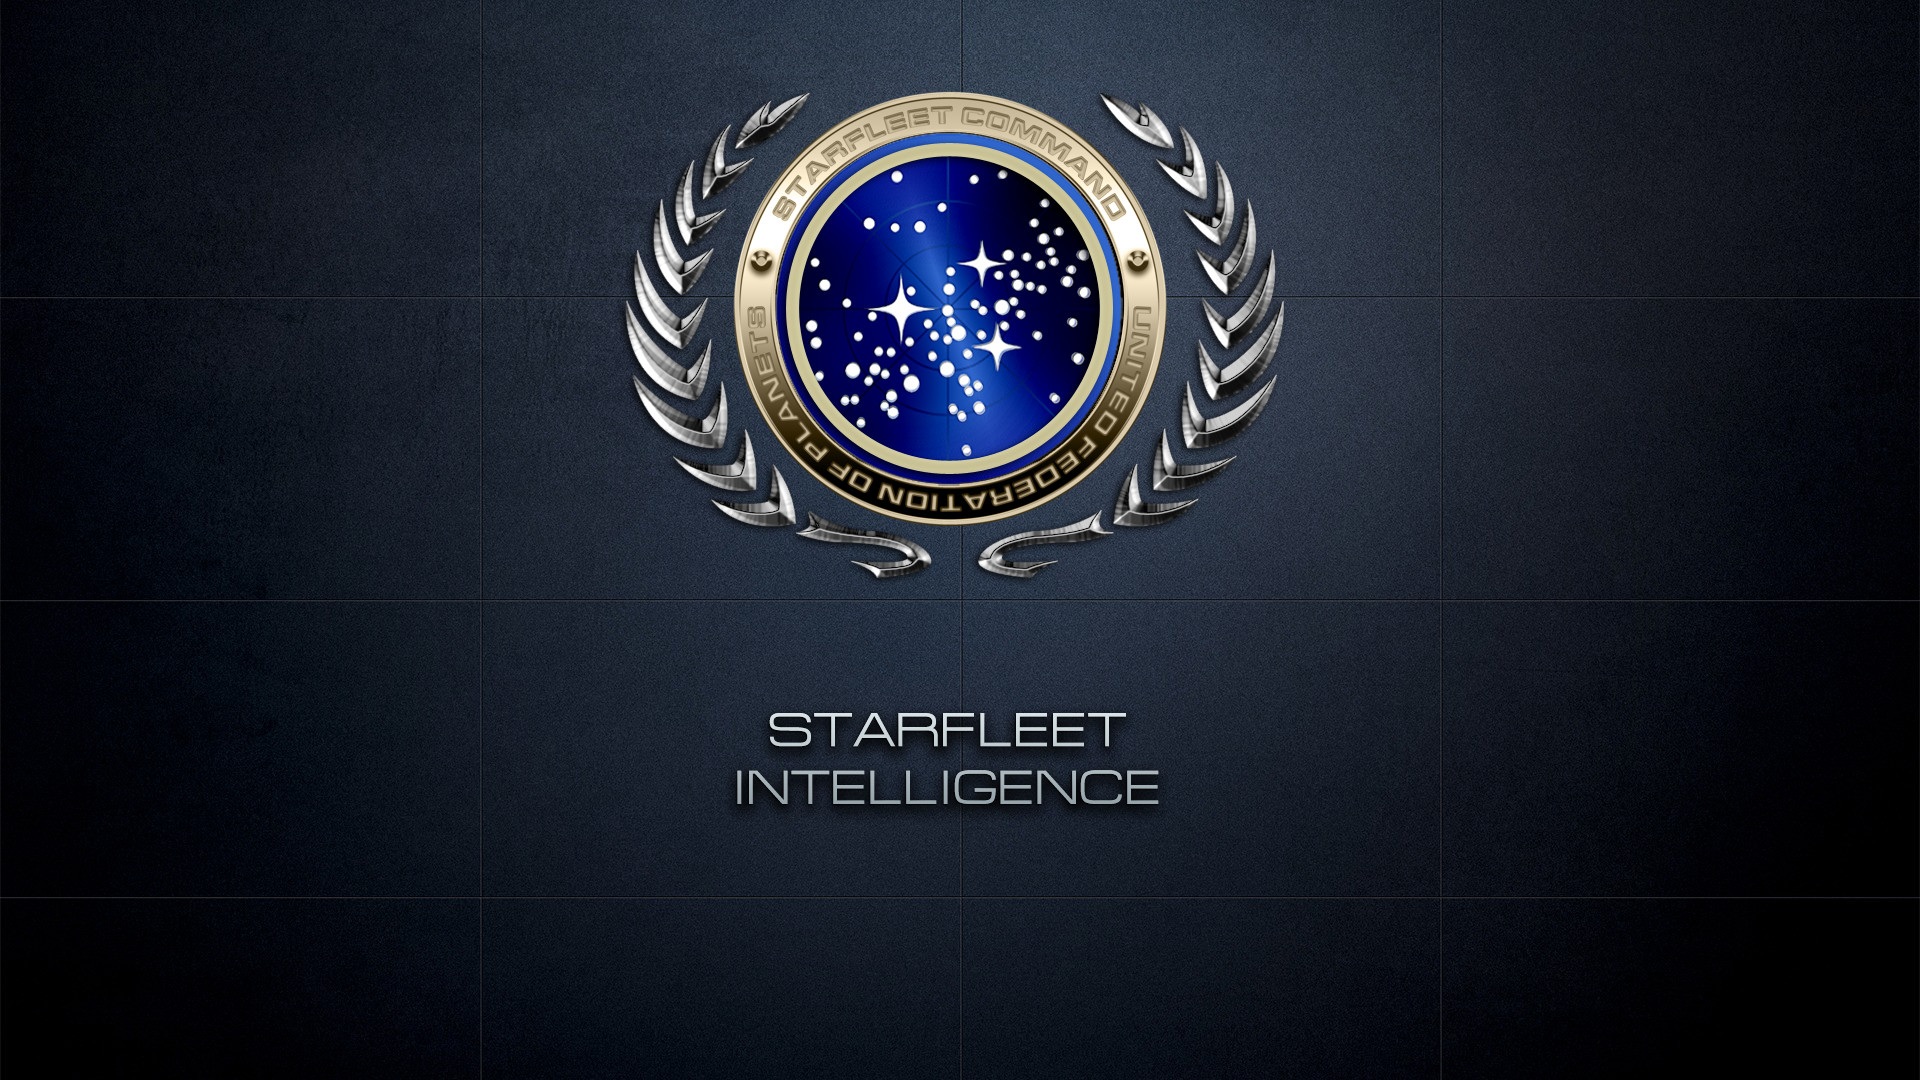 Res: 1920x1080, #STARFLEET INTELLIGENCE | Insignia of the United Federation of Planets and  alternative logo of the STARFLEET_INTEL network | #StarTrek